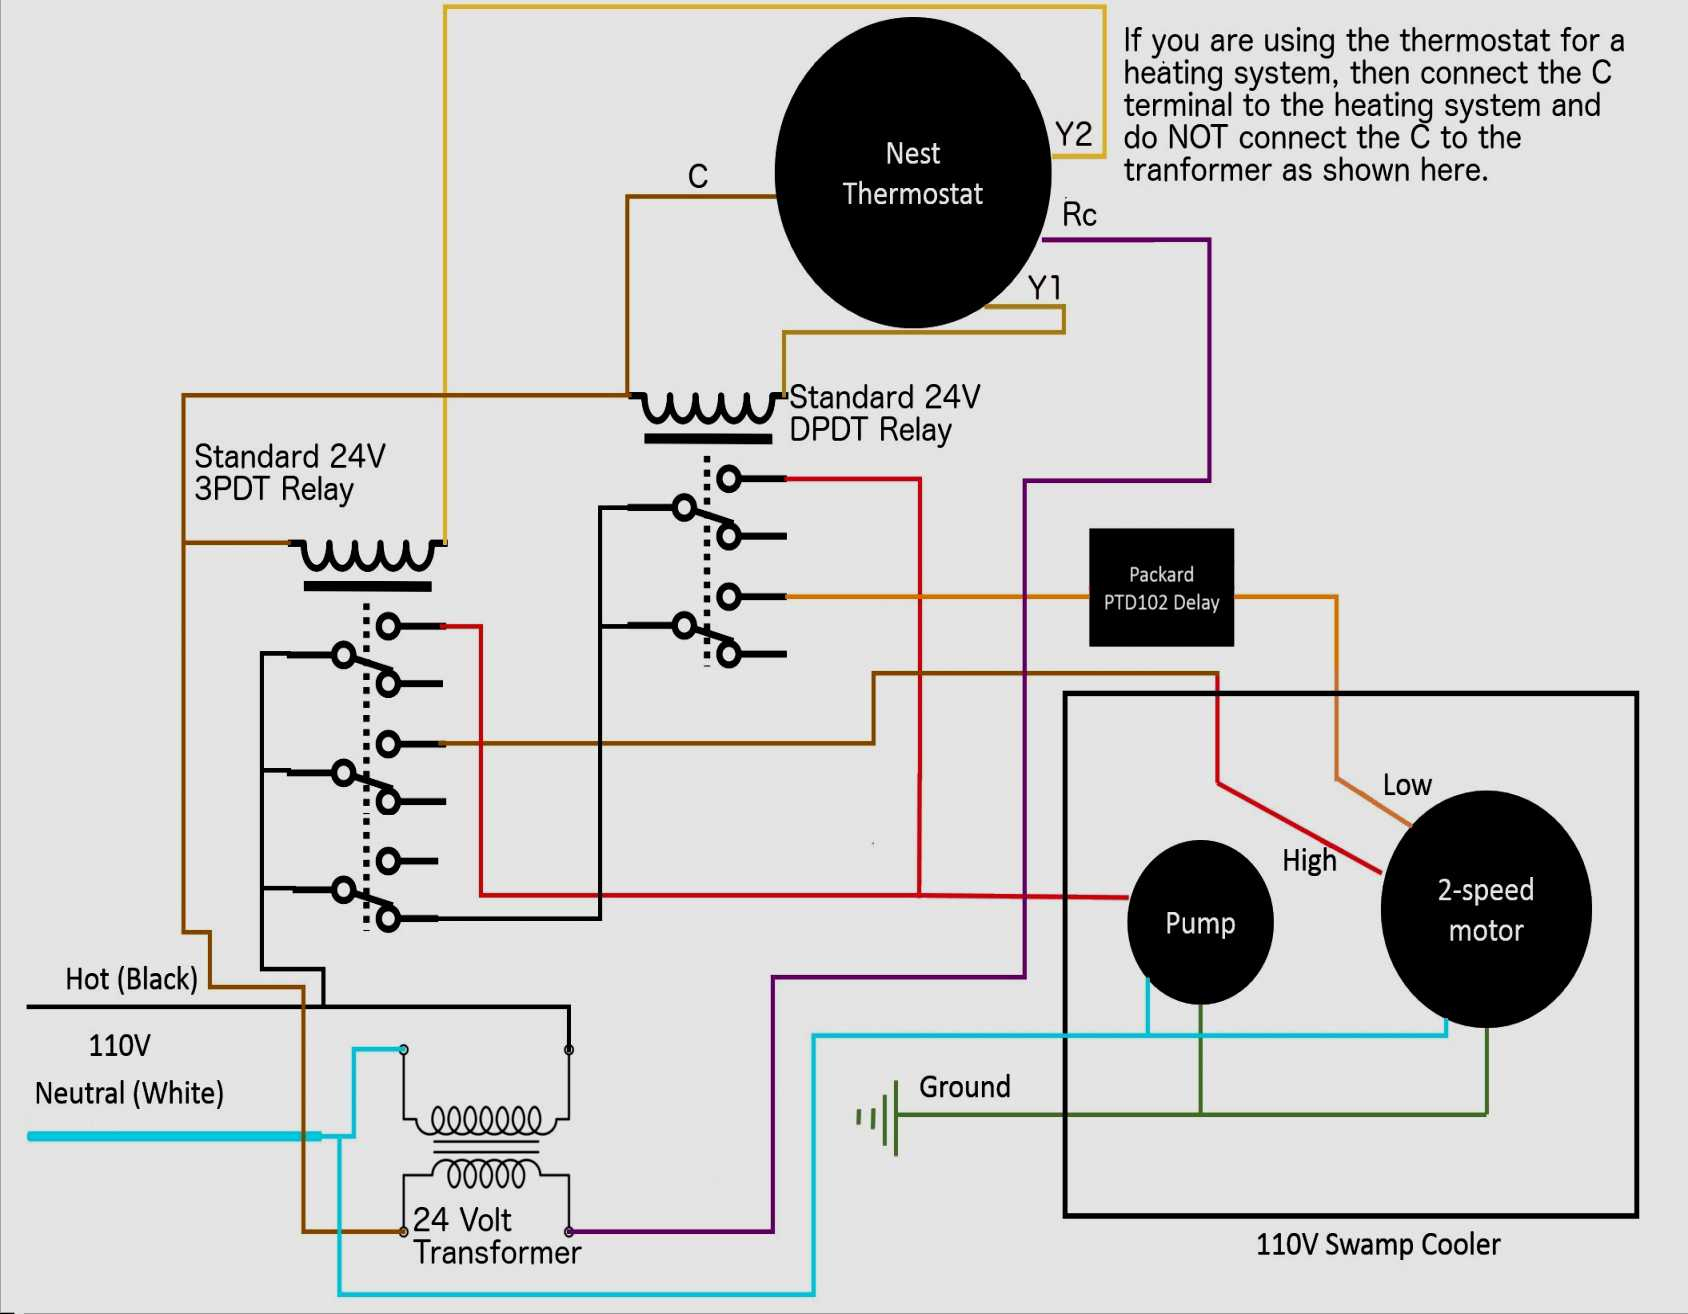 Honeywell Humidifier Wiring Diagram With Nest - Wiring Diagram Essig - Nest Humidifier Wiring Diagram